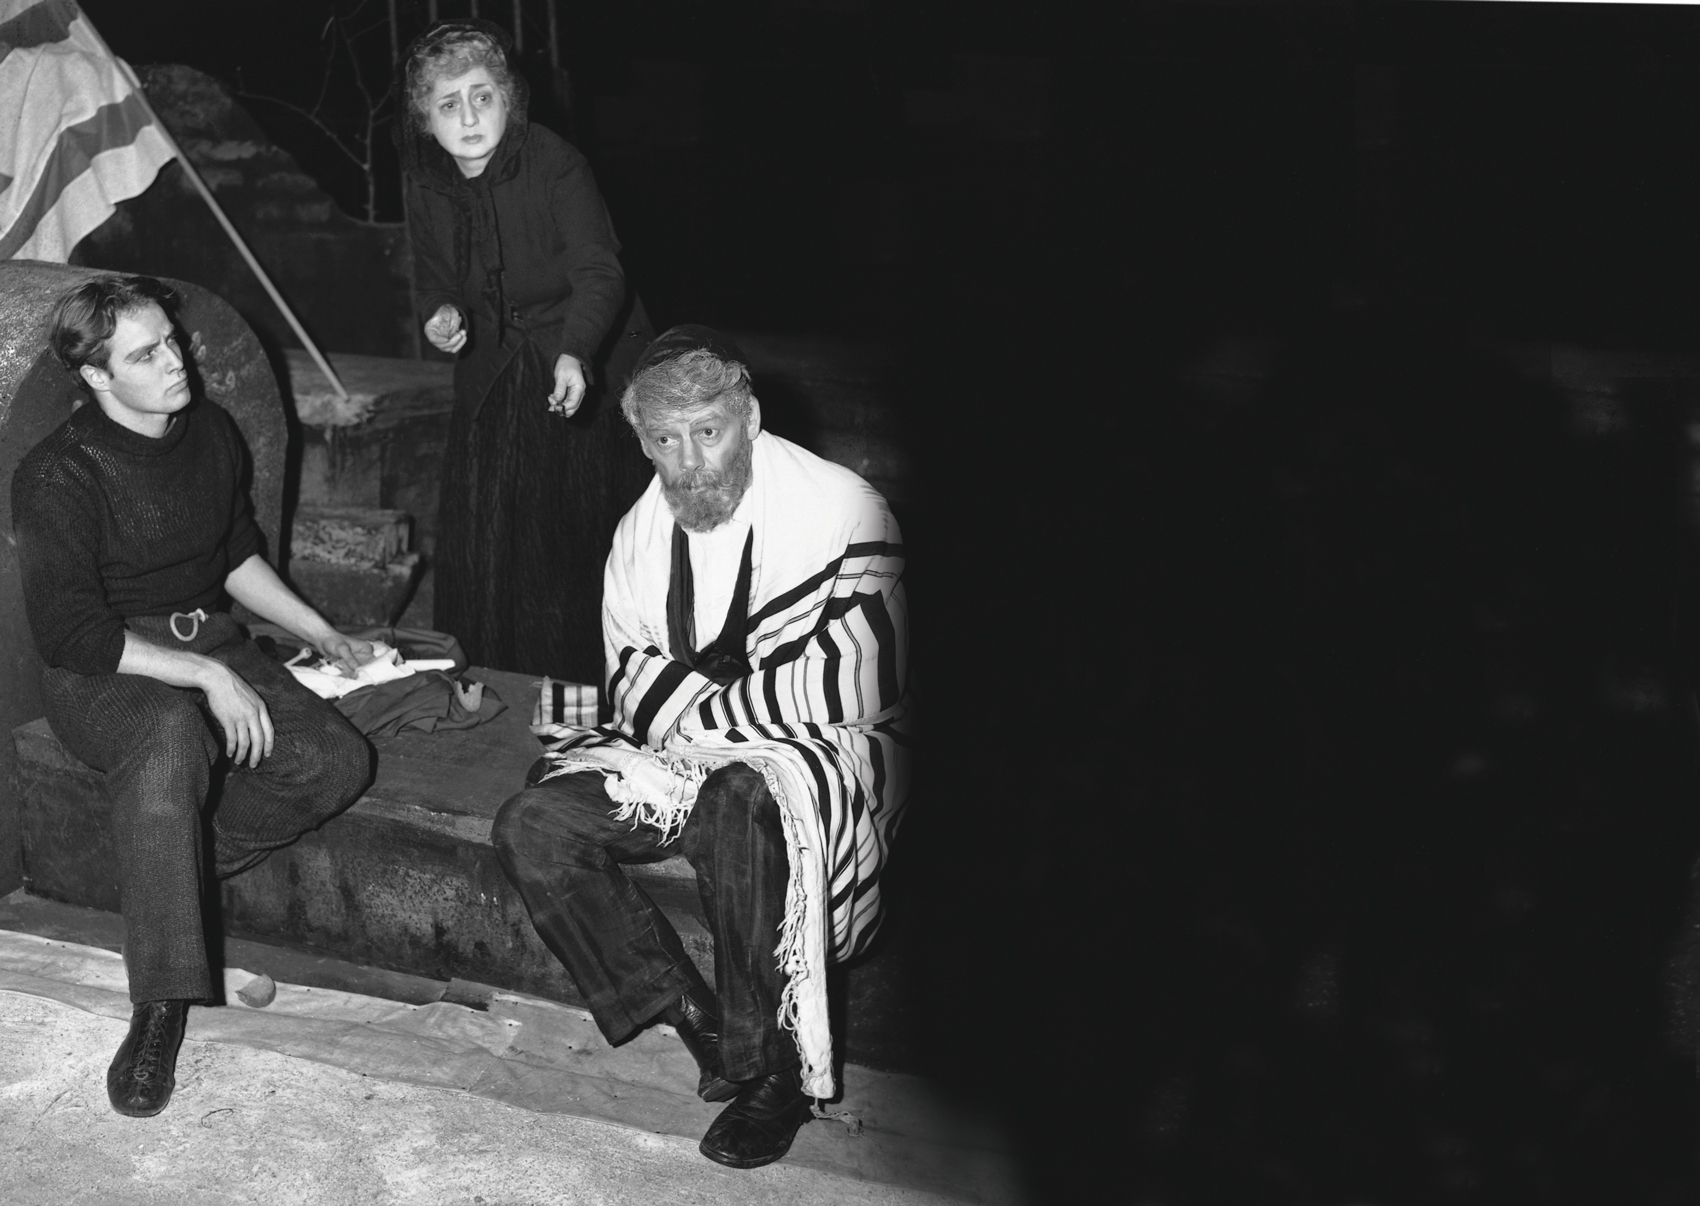 Everyone involved in A Flag Is Born had rallied to Ben Hecht's call, and many volunteered their services. Celia Adler, first lady of the Yiddish stage, played the heroine alongside Paul Muni and Marlon Brando. Muni (left), Adler, and Brando rehearse before opening night